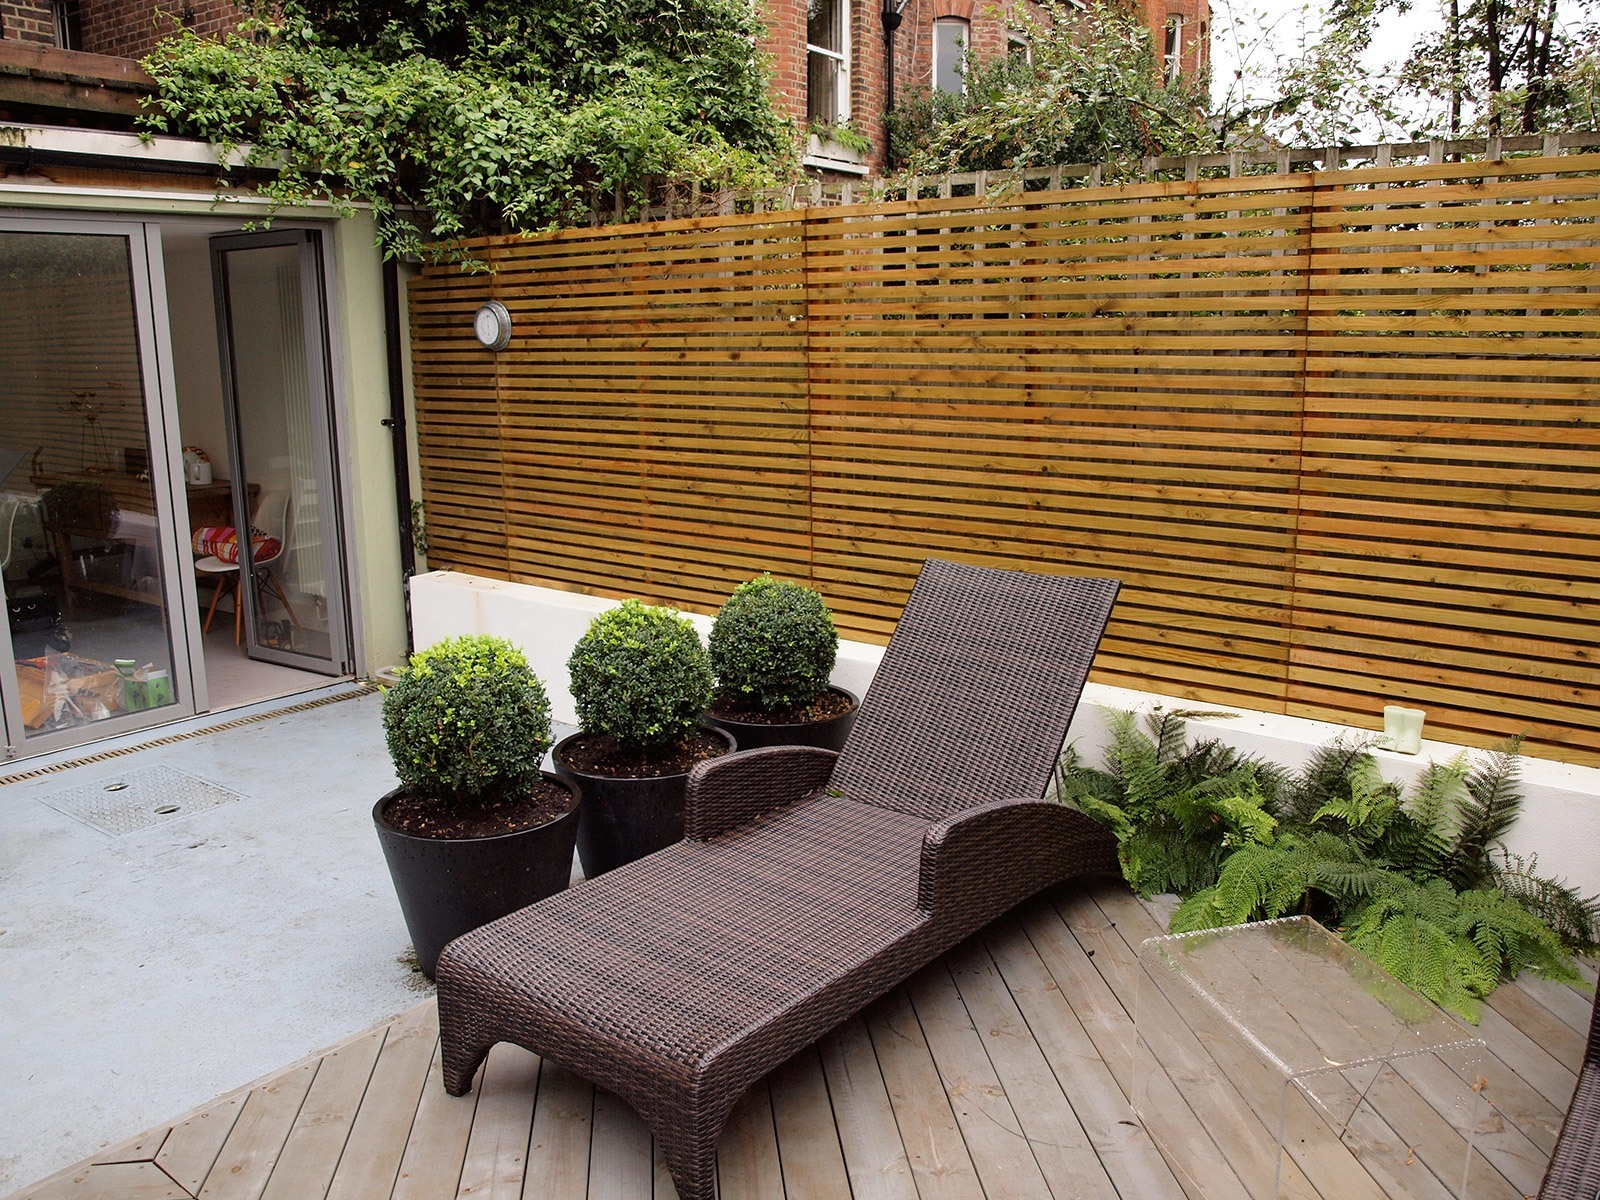 Modern garden furniture and planters and a very limited plant palette reinforce the sense of controlled neatness.